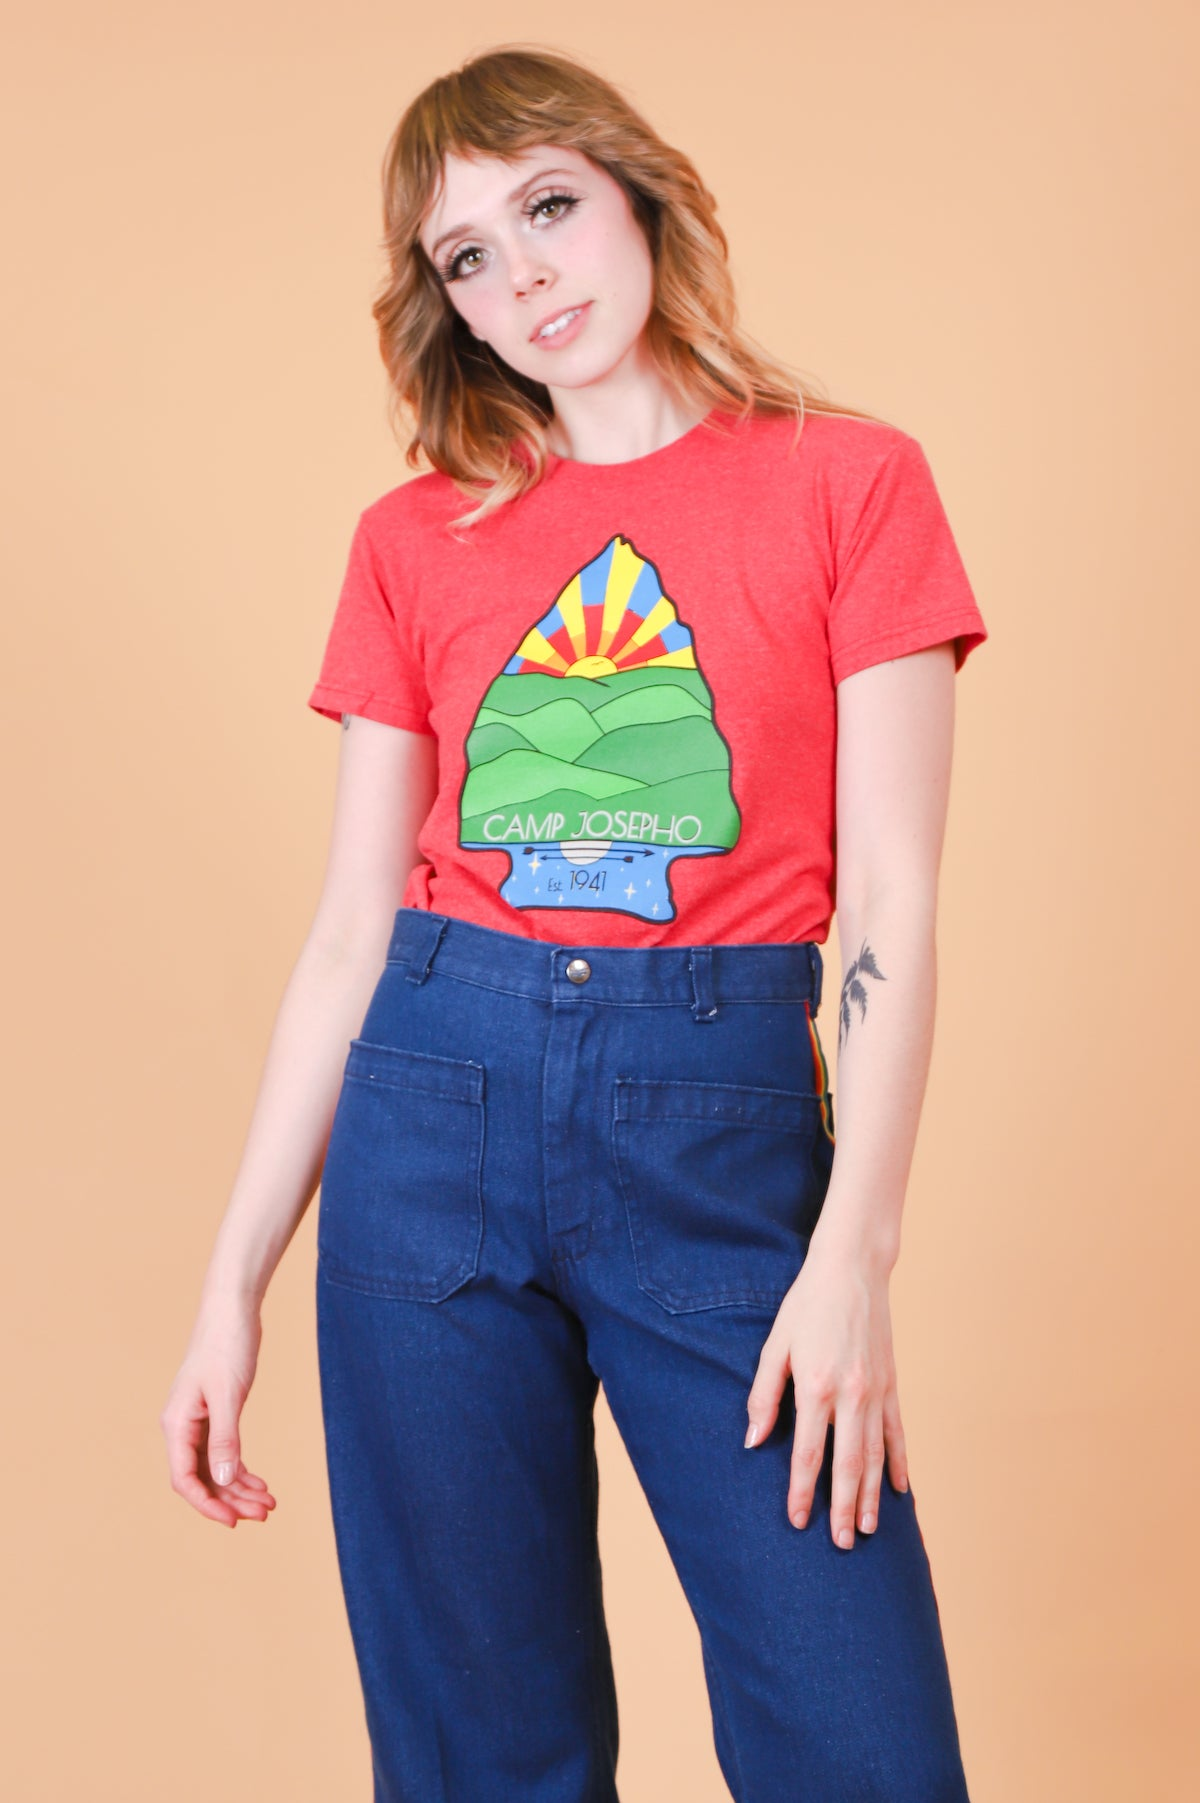 Vintage Camp Josepho Sunrise Tee